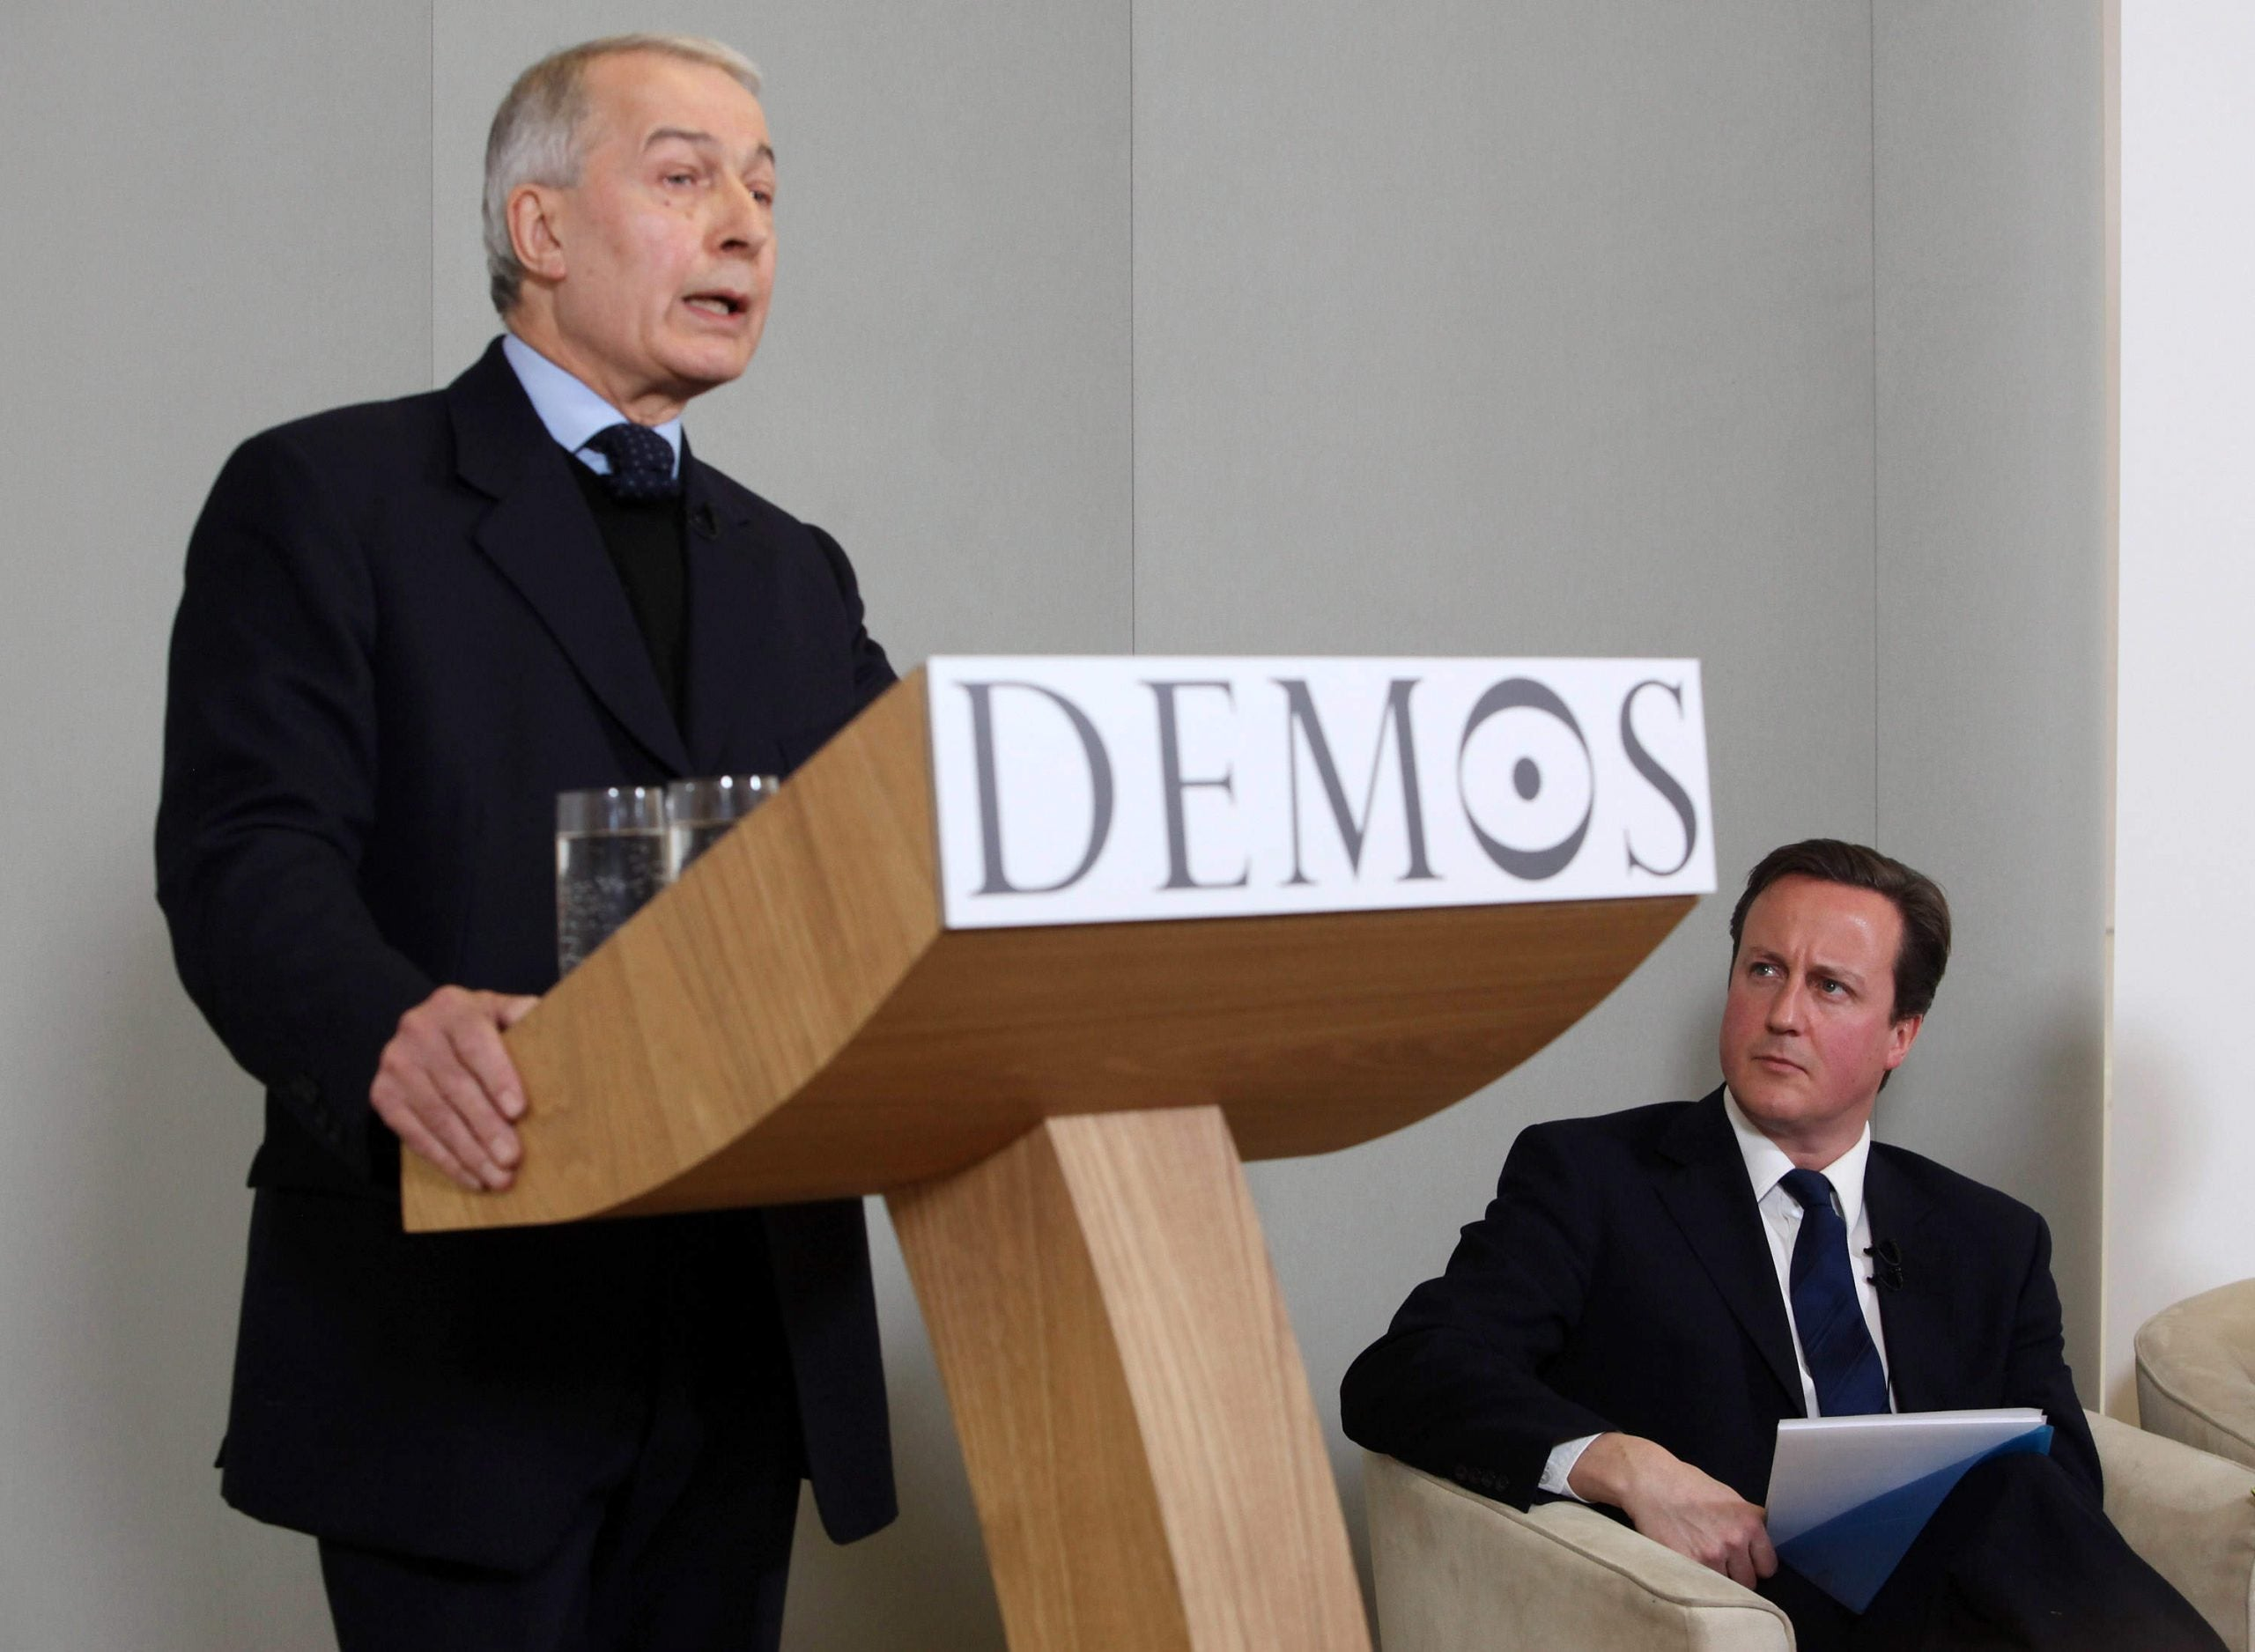 The government is in a mess over tax credits. But Frank Field's solution won't work